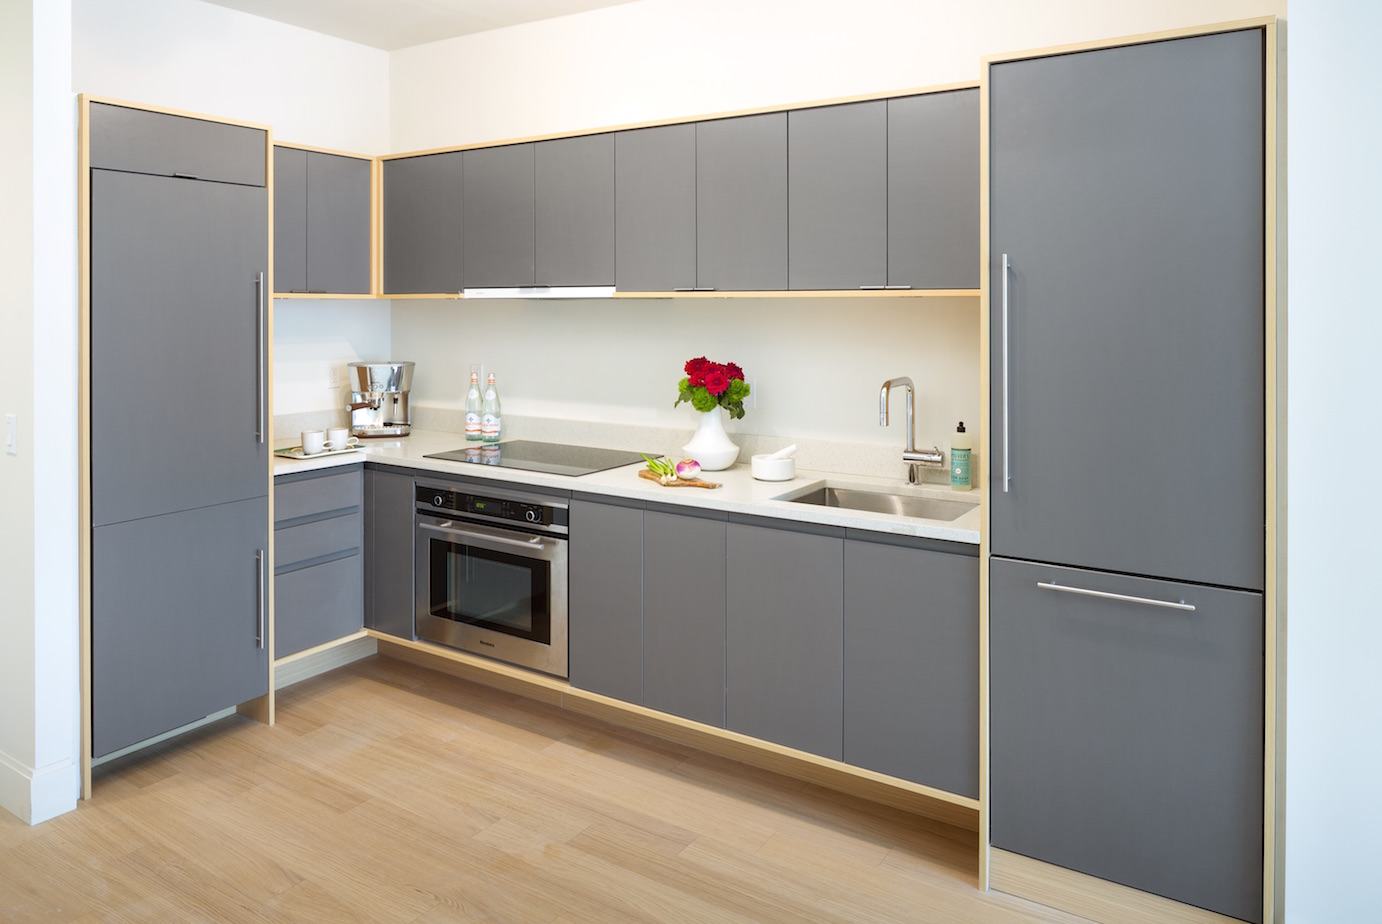 100 kitchen cabinets in brooklyn ny kitchen for Kitchen cabinets 3rd ave brooklyn